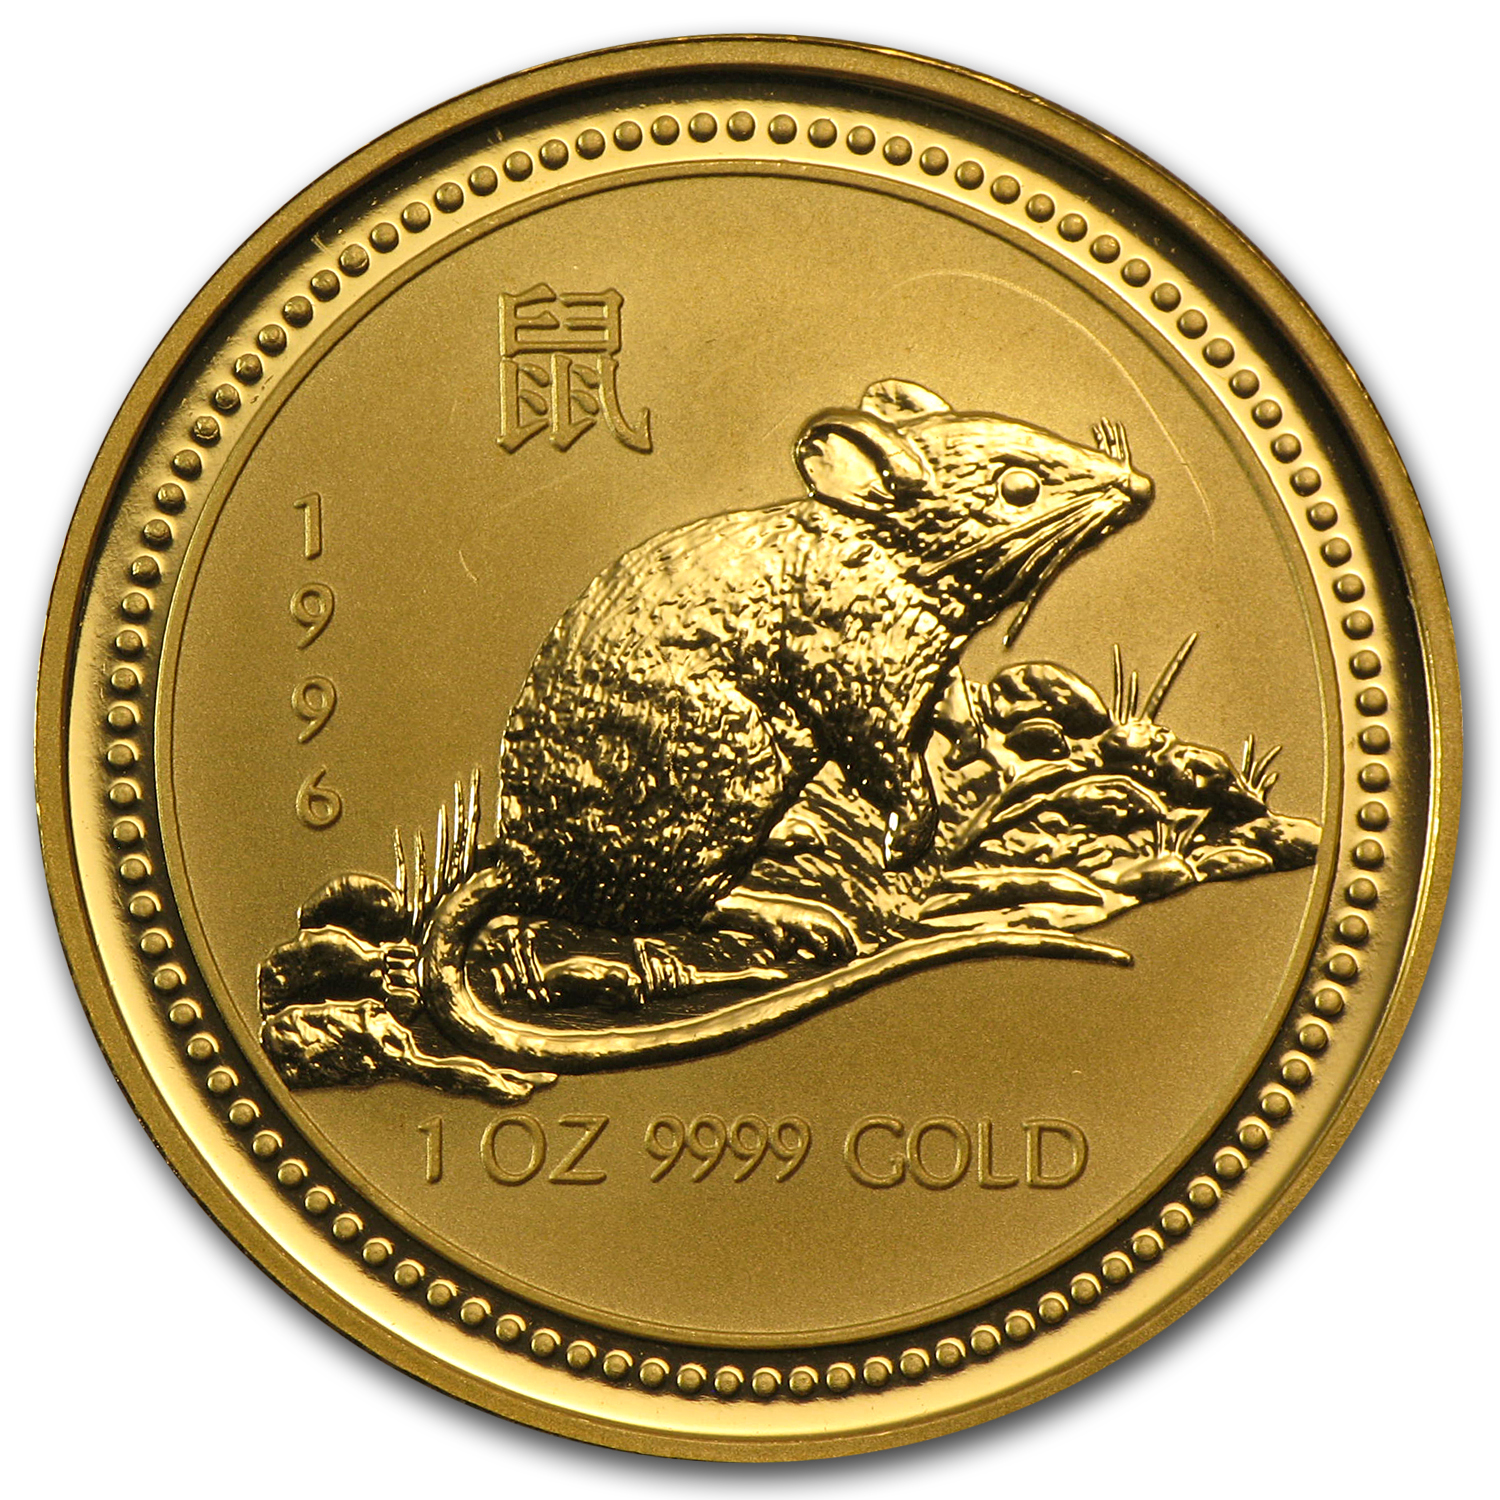 1996 1 oz Gold Year of the Rat Lunar Coin (SI) Light Abrasions